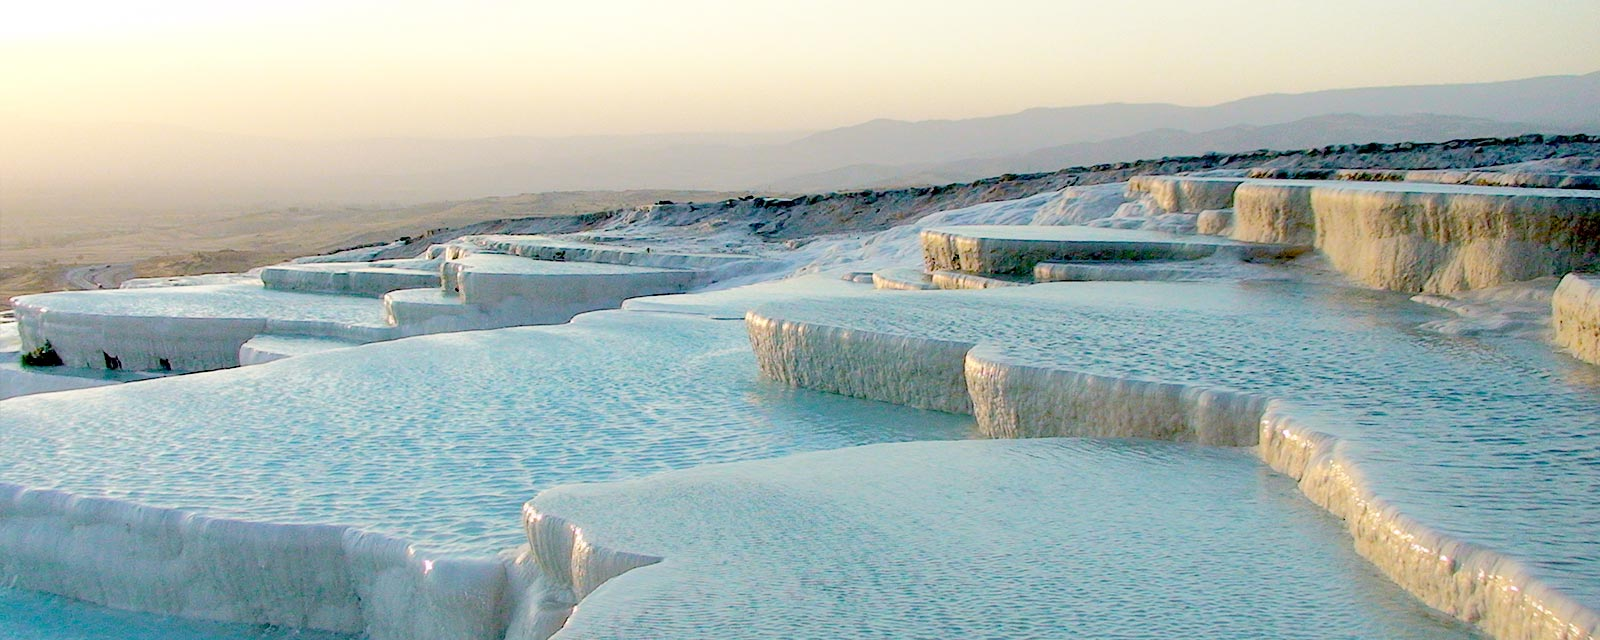 Pammukale Turkey